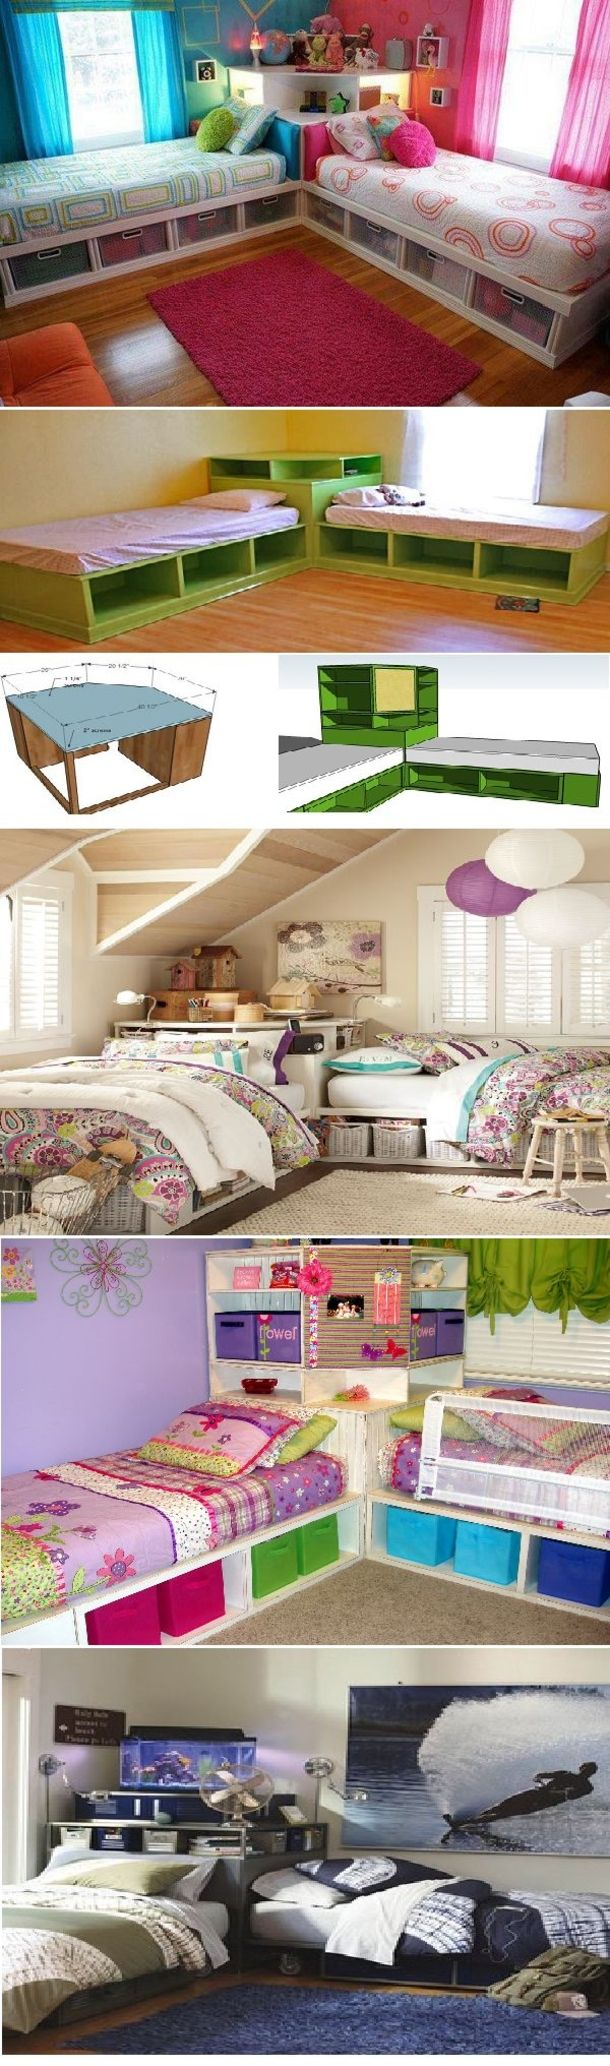 best 25+ shared bedrooms ideas on pinterest | sister bedroom